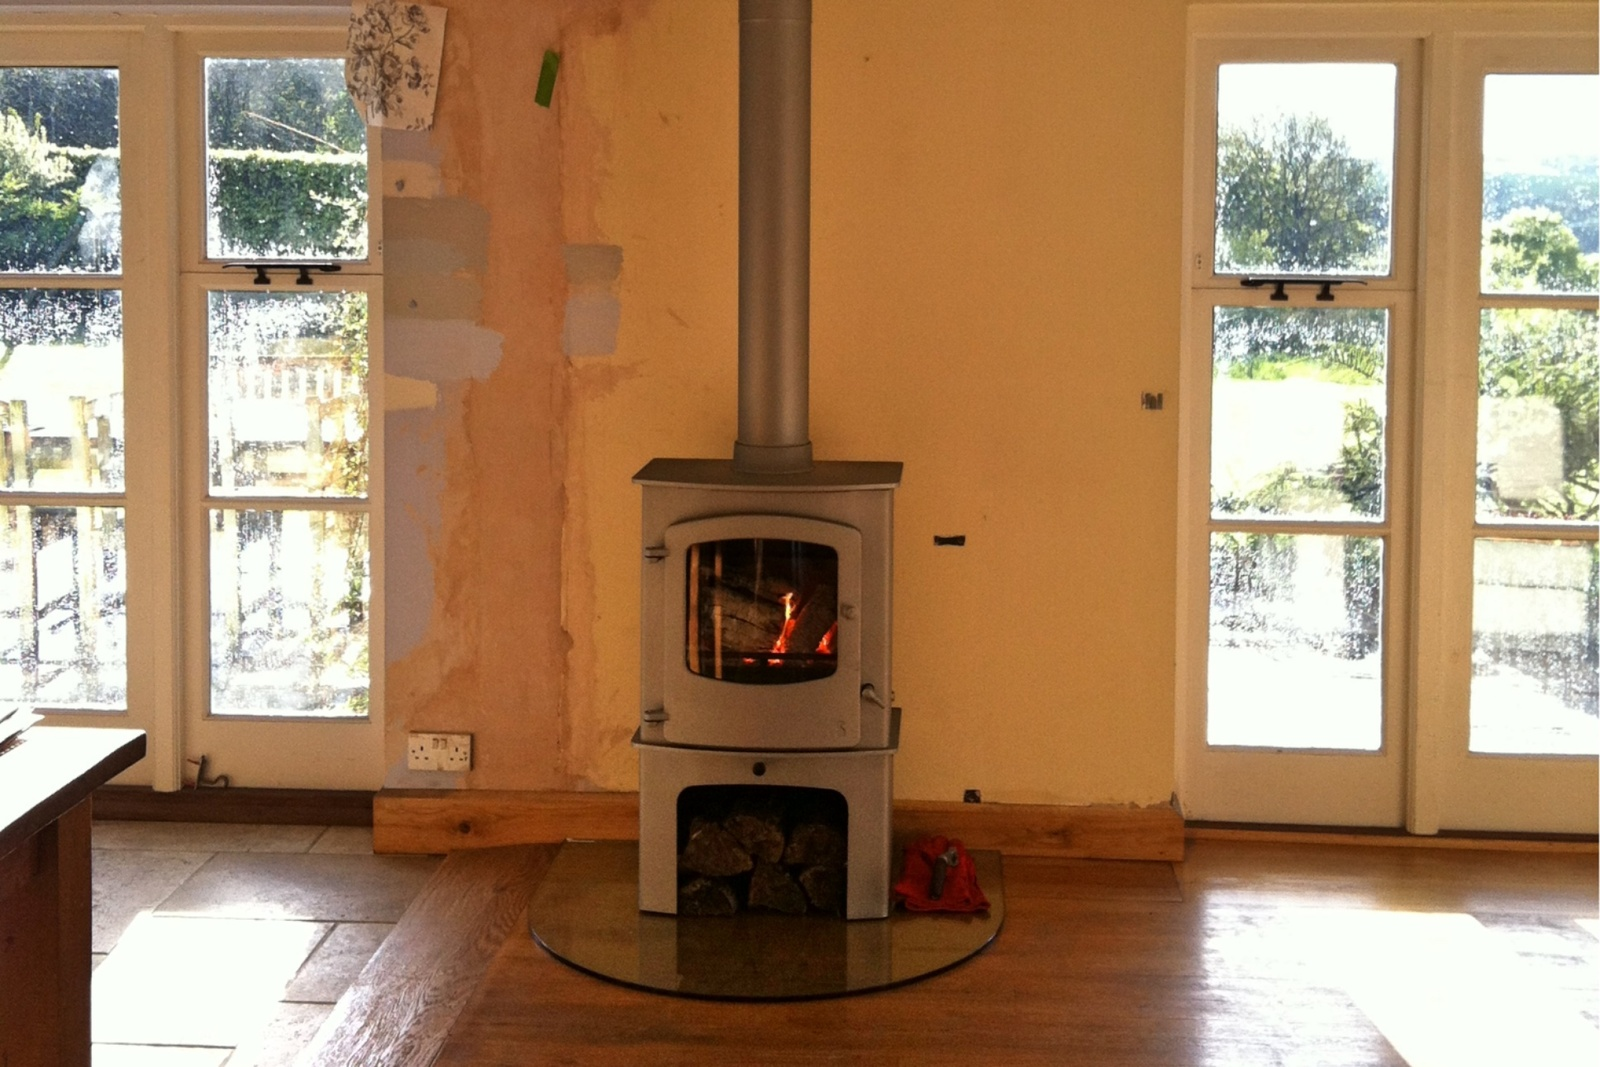 With the stove in situ, the owners could complete the transformation of the room with a fresh coat of paint.